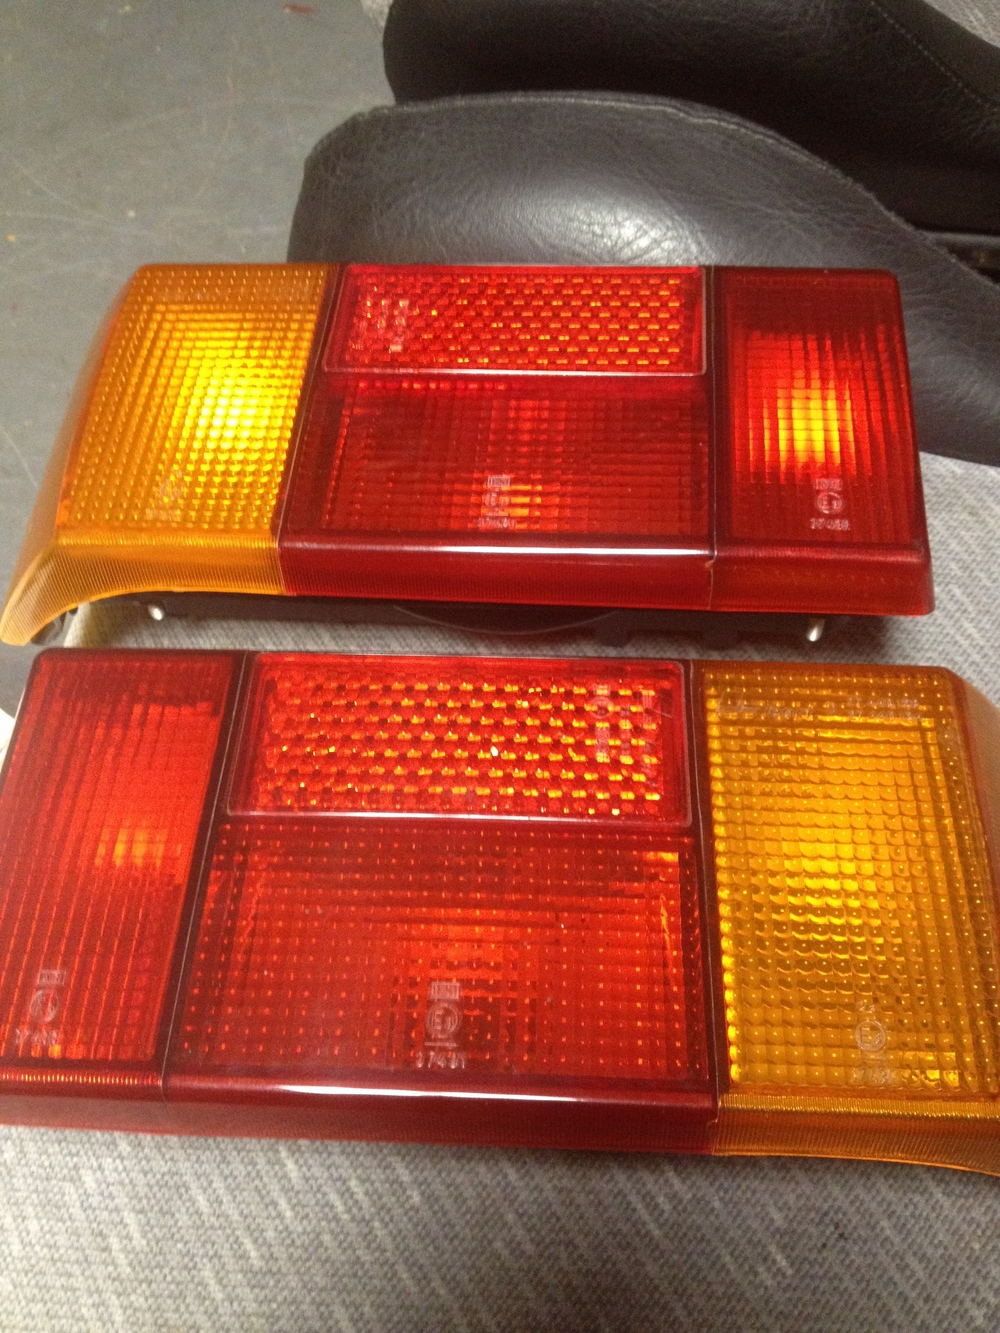 NOS hella MK1 postal tail lights